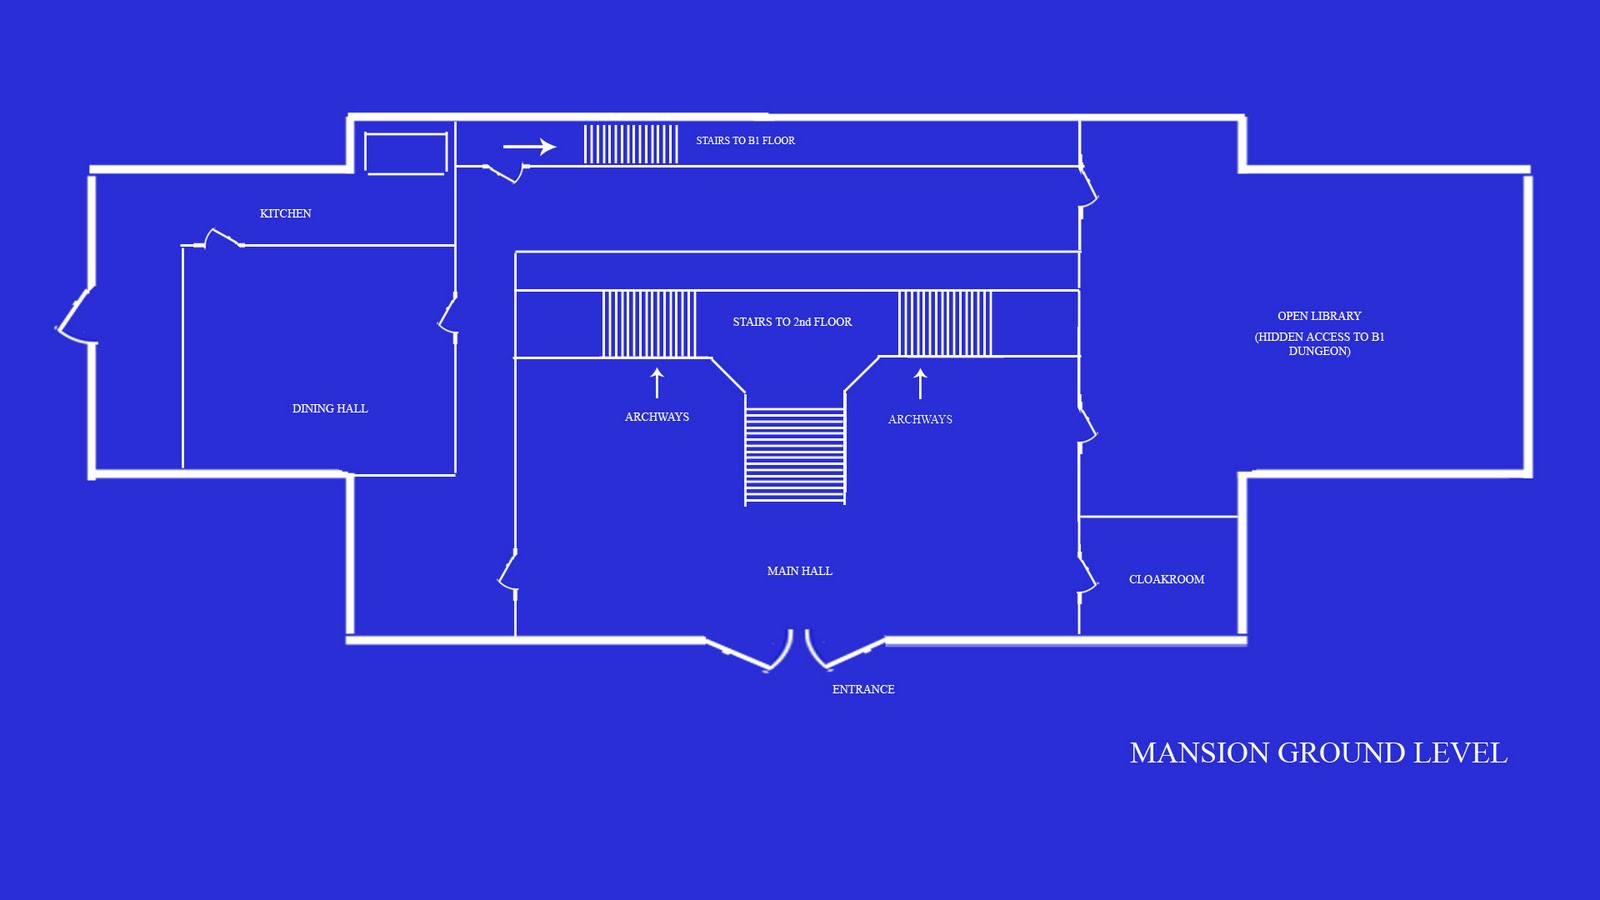 D02c11bdc1e4bb63 House Boat Holidays Ltd Floor Plans likewise 1906 House Plans Hip Roof likewise Cabane Jardin Moderne Fonctionnelle moreover A Frame Style House additionally Hand Hewn Log Homes Floor Plans. on small barn style house plans